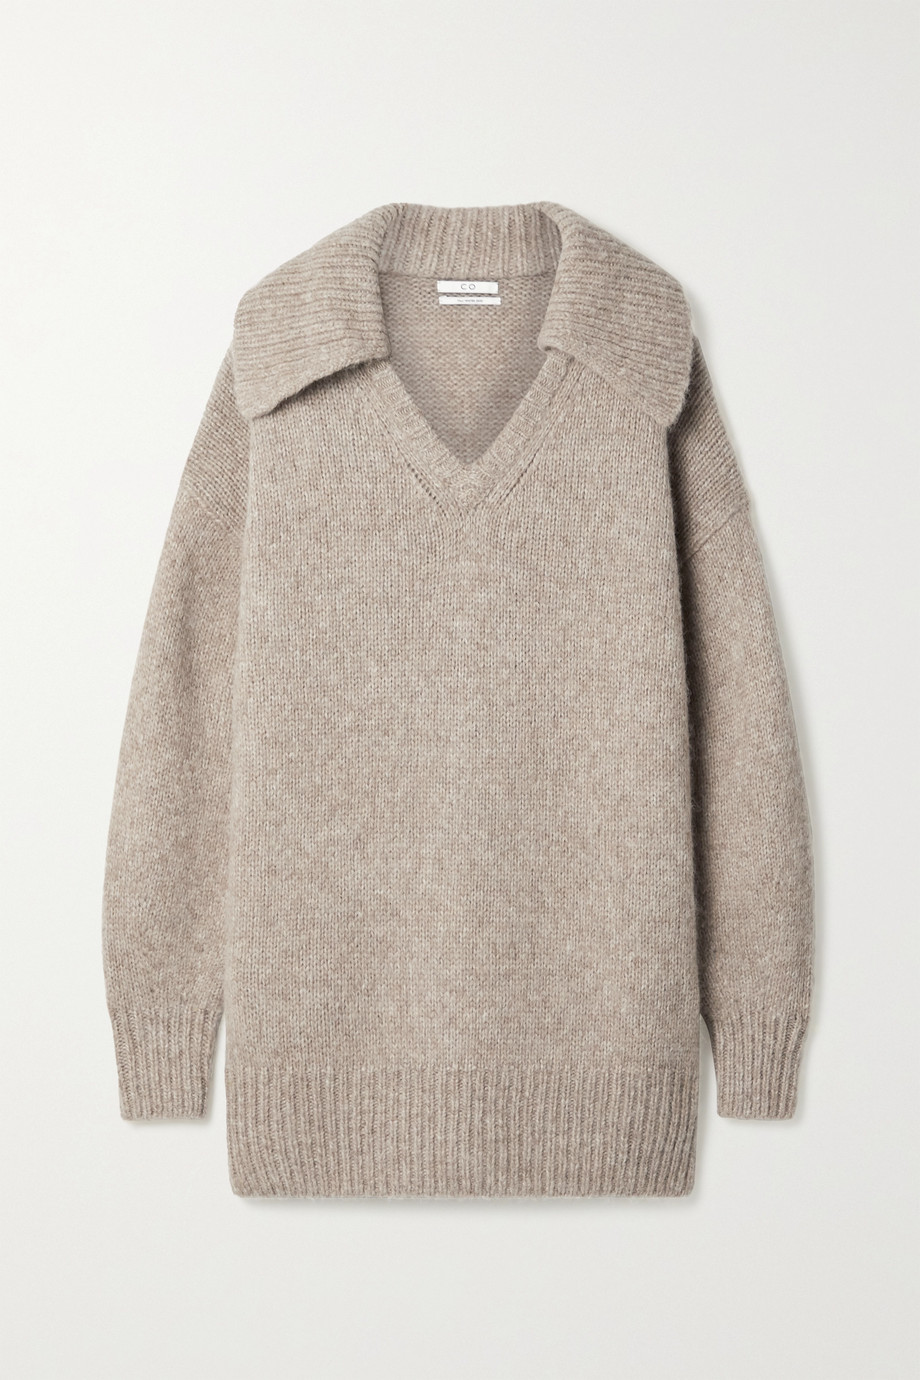 Co Oversized alpaca-blend sweater